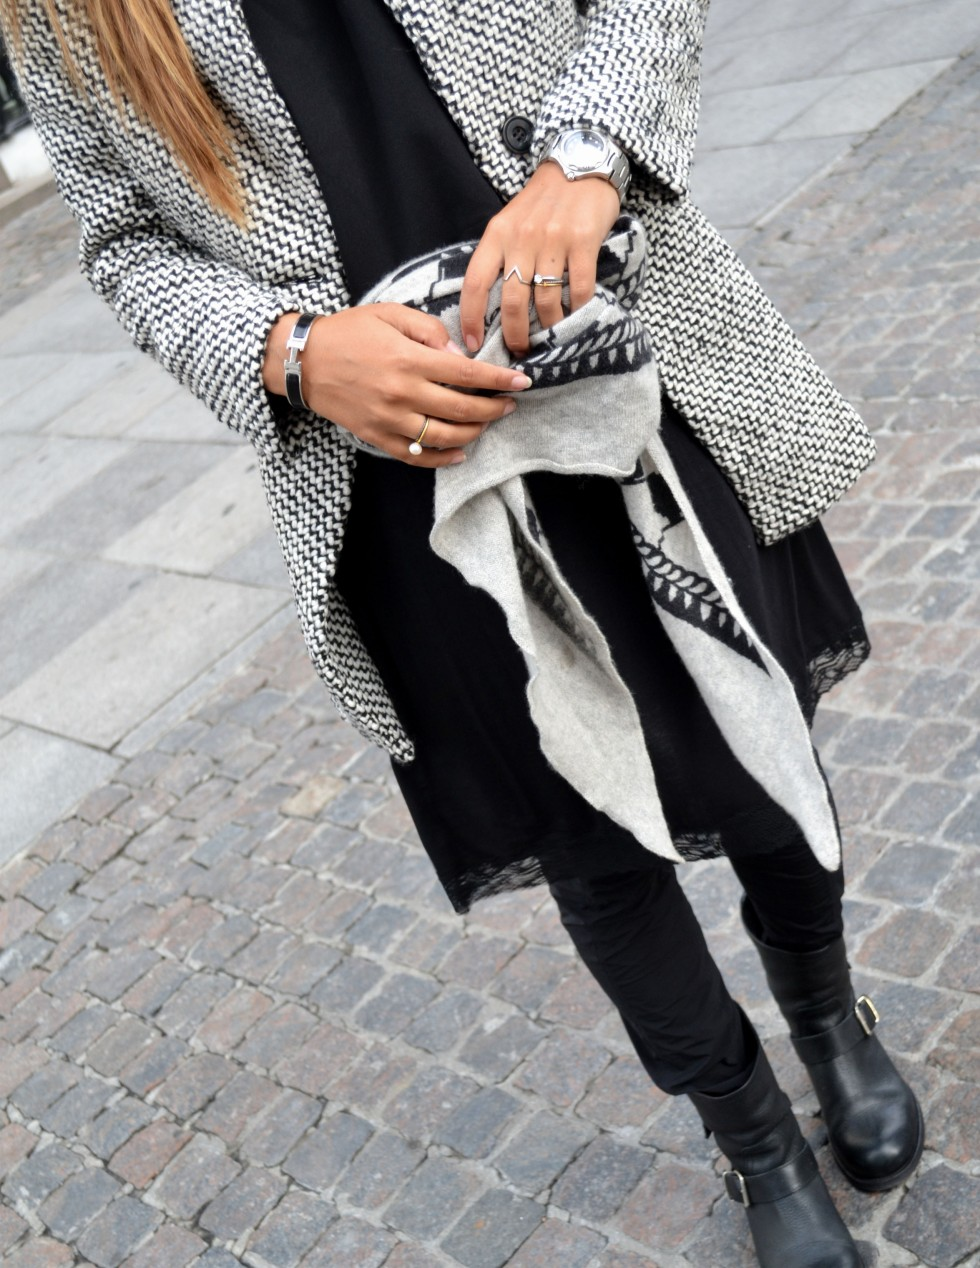 Maria Kragmann in monochrome wearing boots from Sheinside, lace dress from H&M, trousers from Ilaria Nistri, boots from Billi Bi and a scarf from Lala Berlin